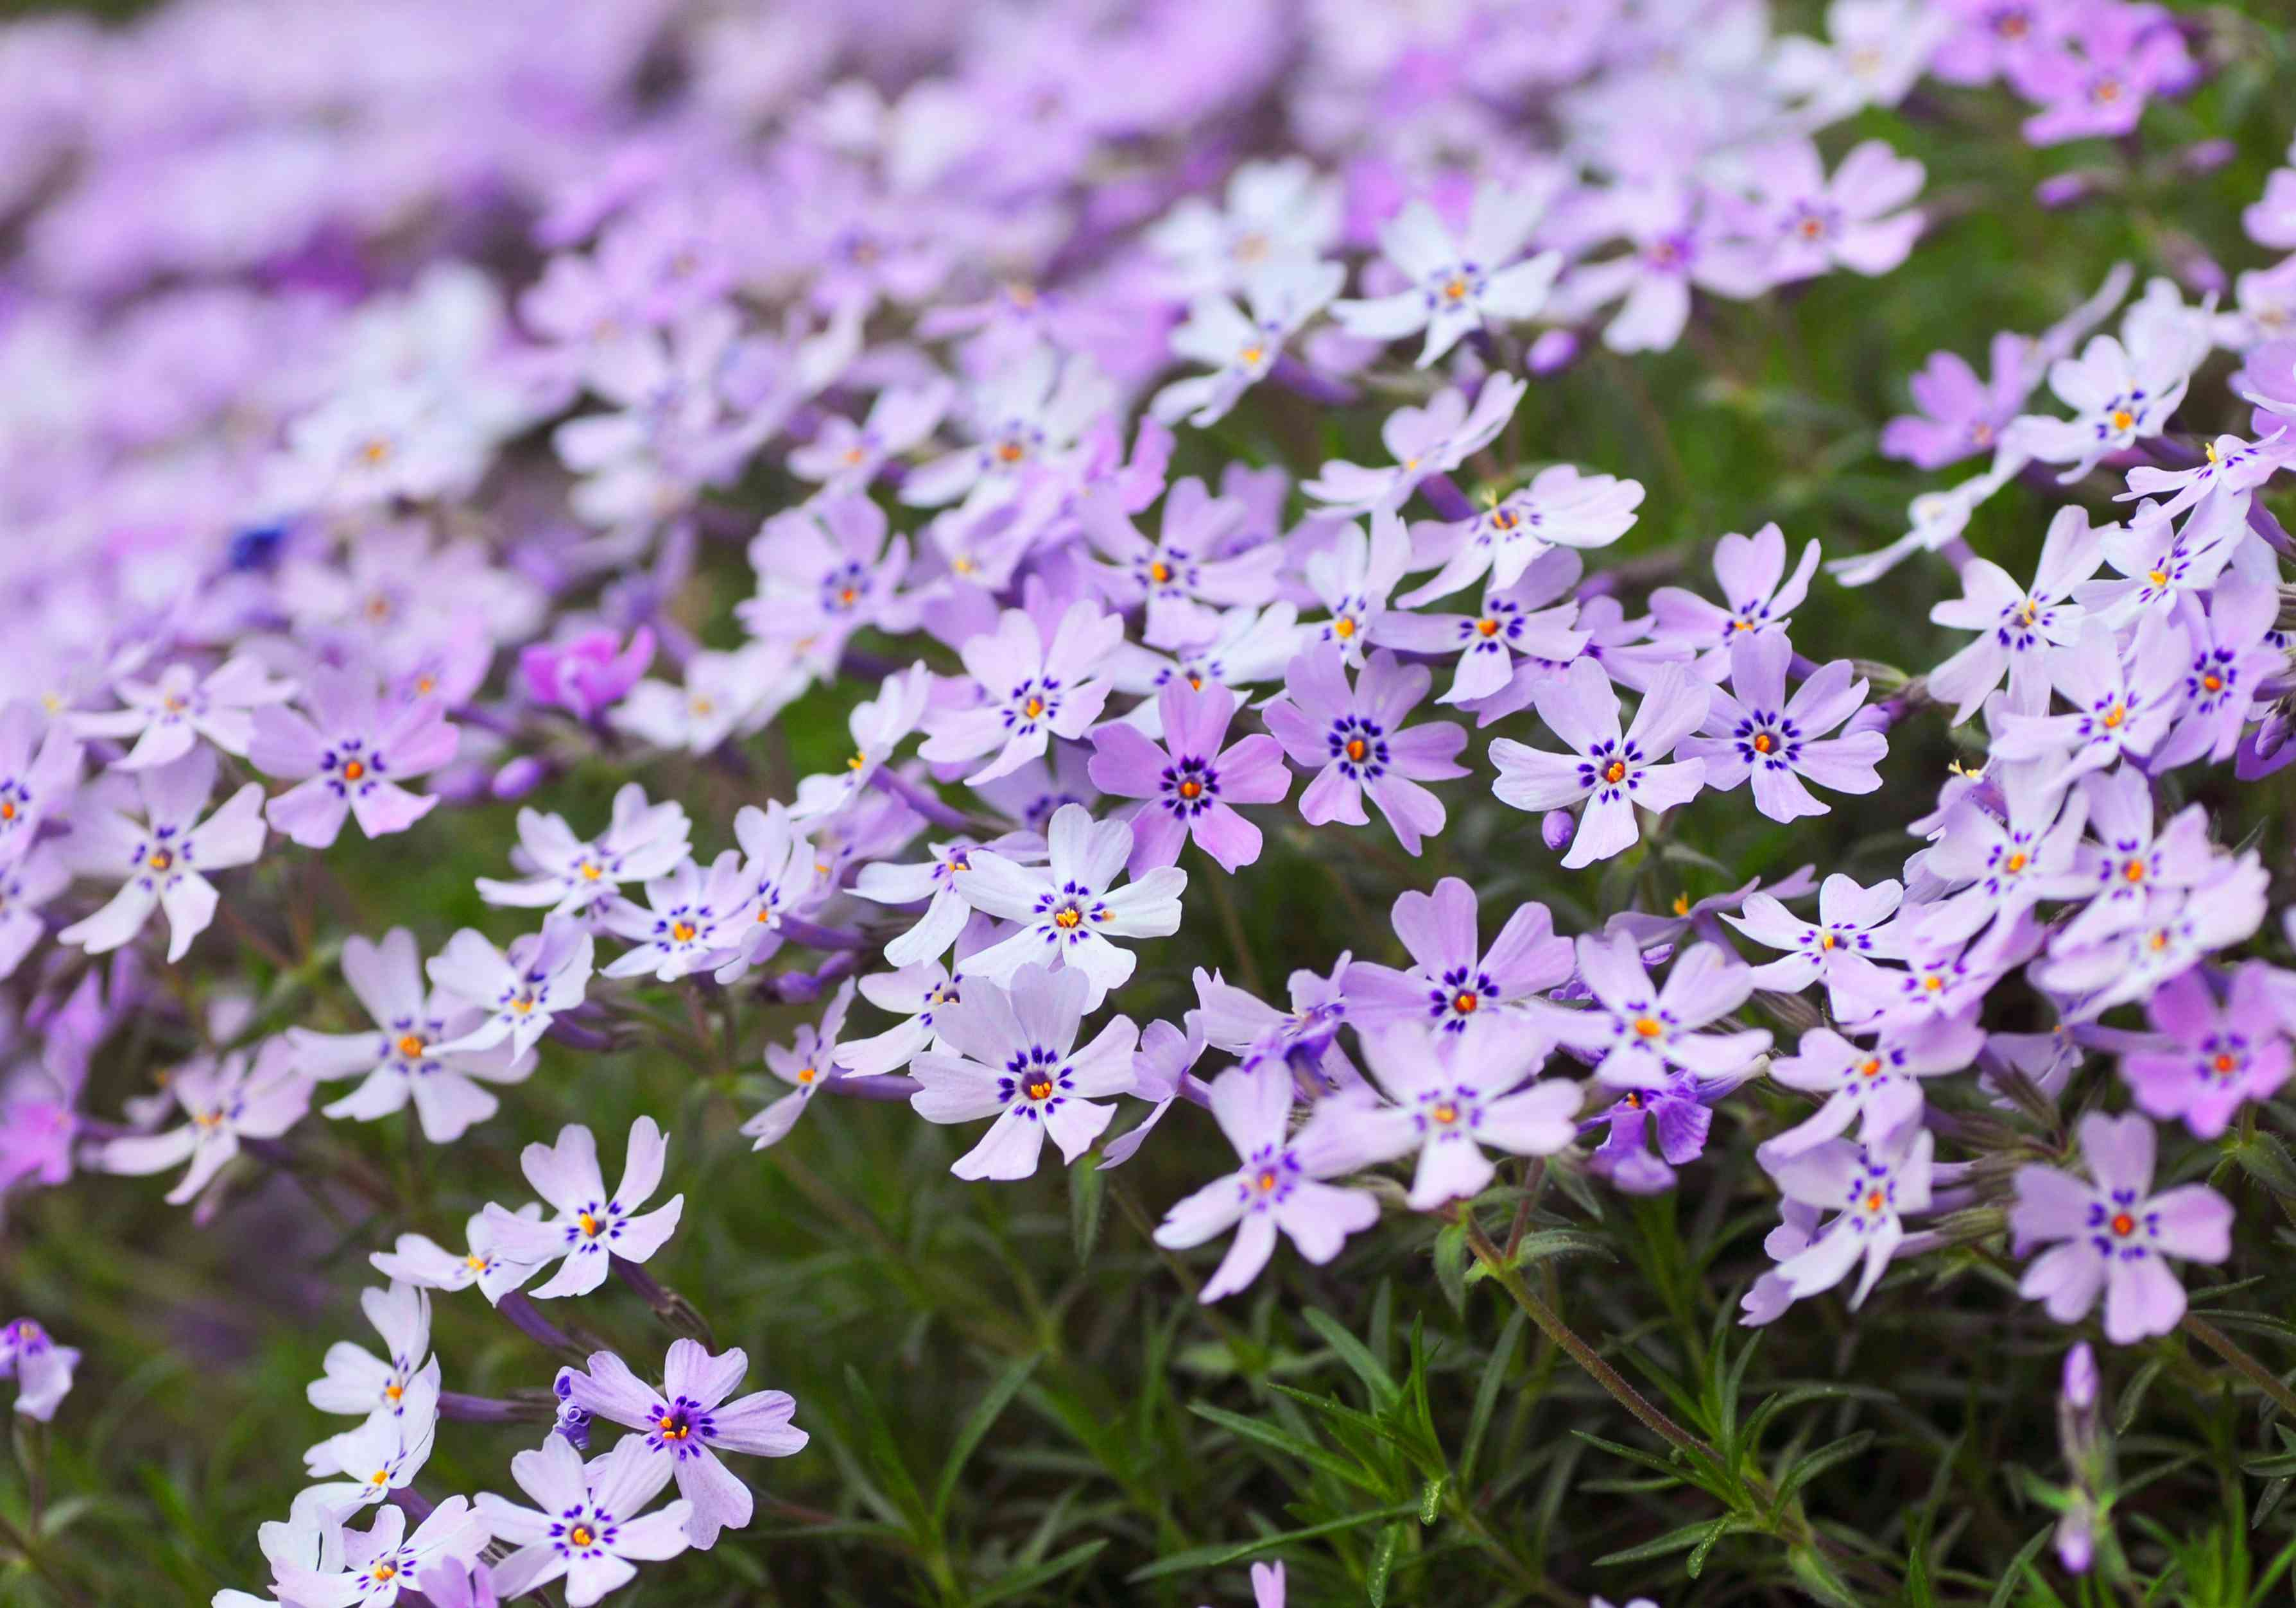 Creeping phlox with light purple flowers and orange centers in ground